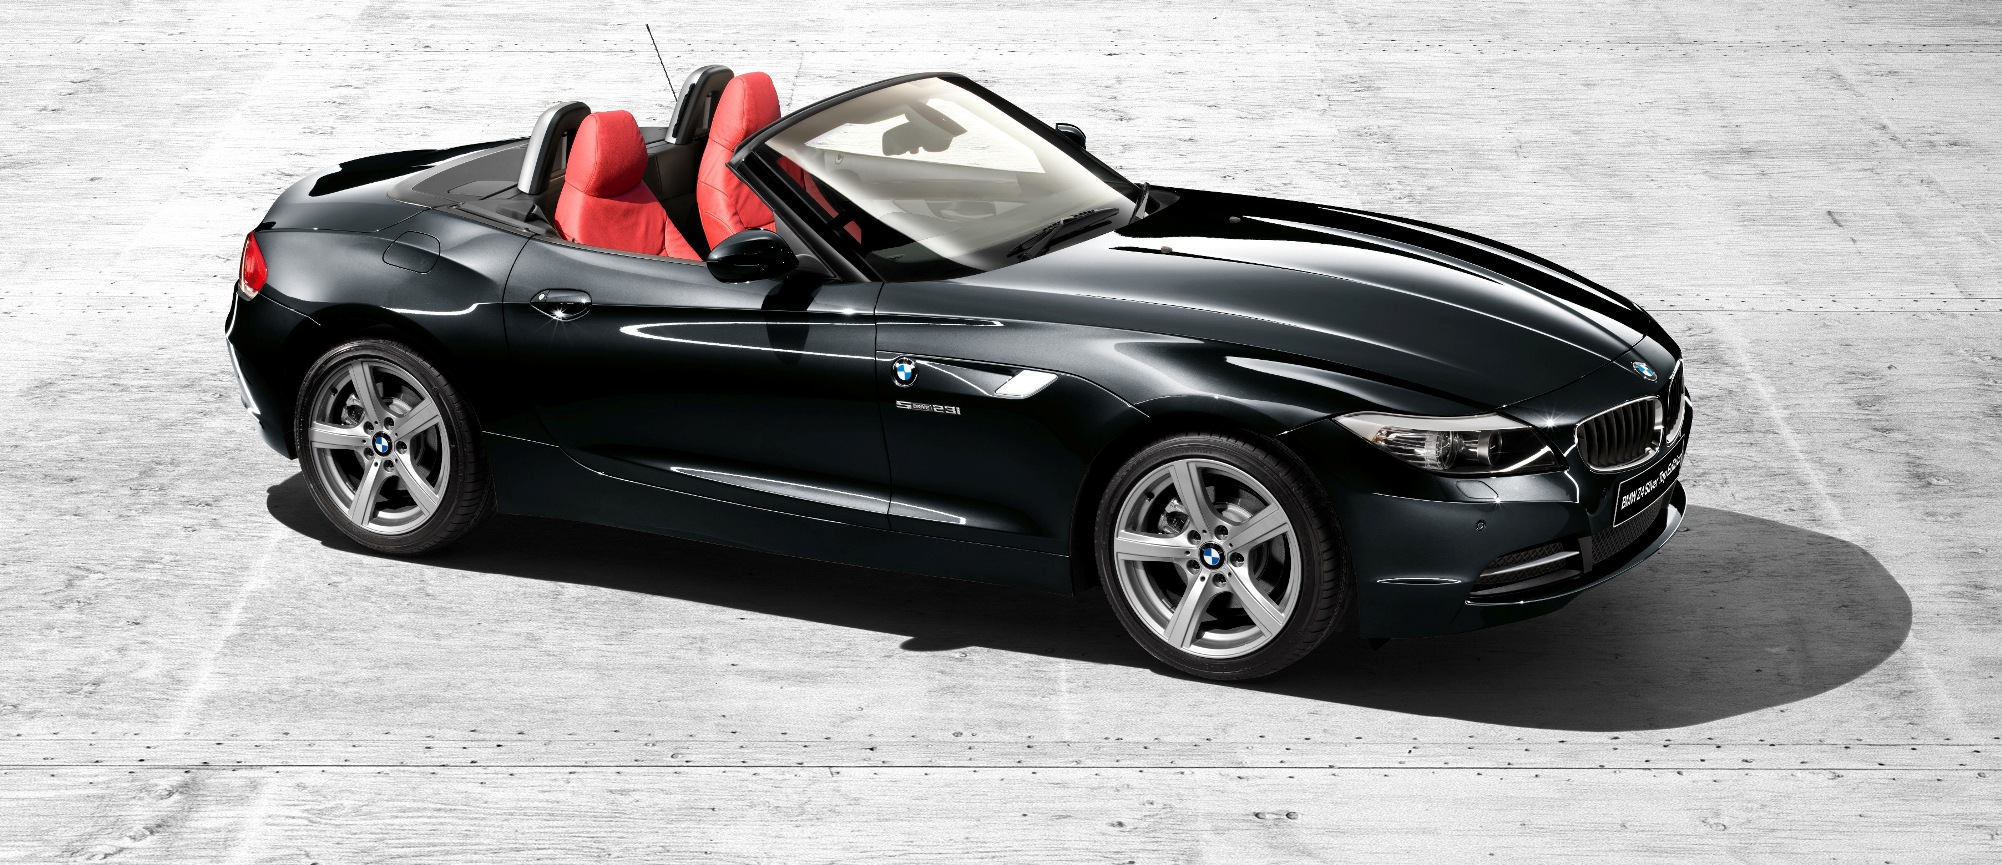 2010 Bmw Z4 Silver Top Edition Top Speed